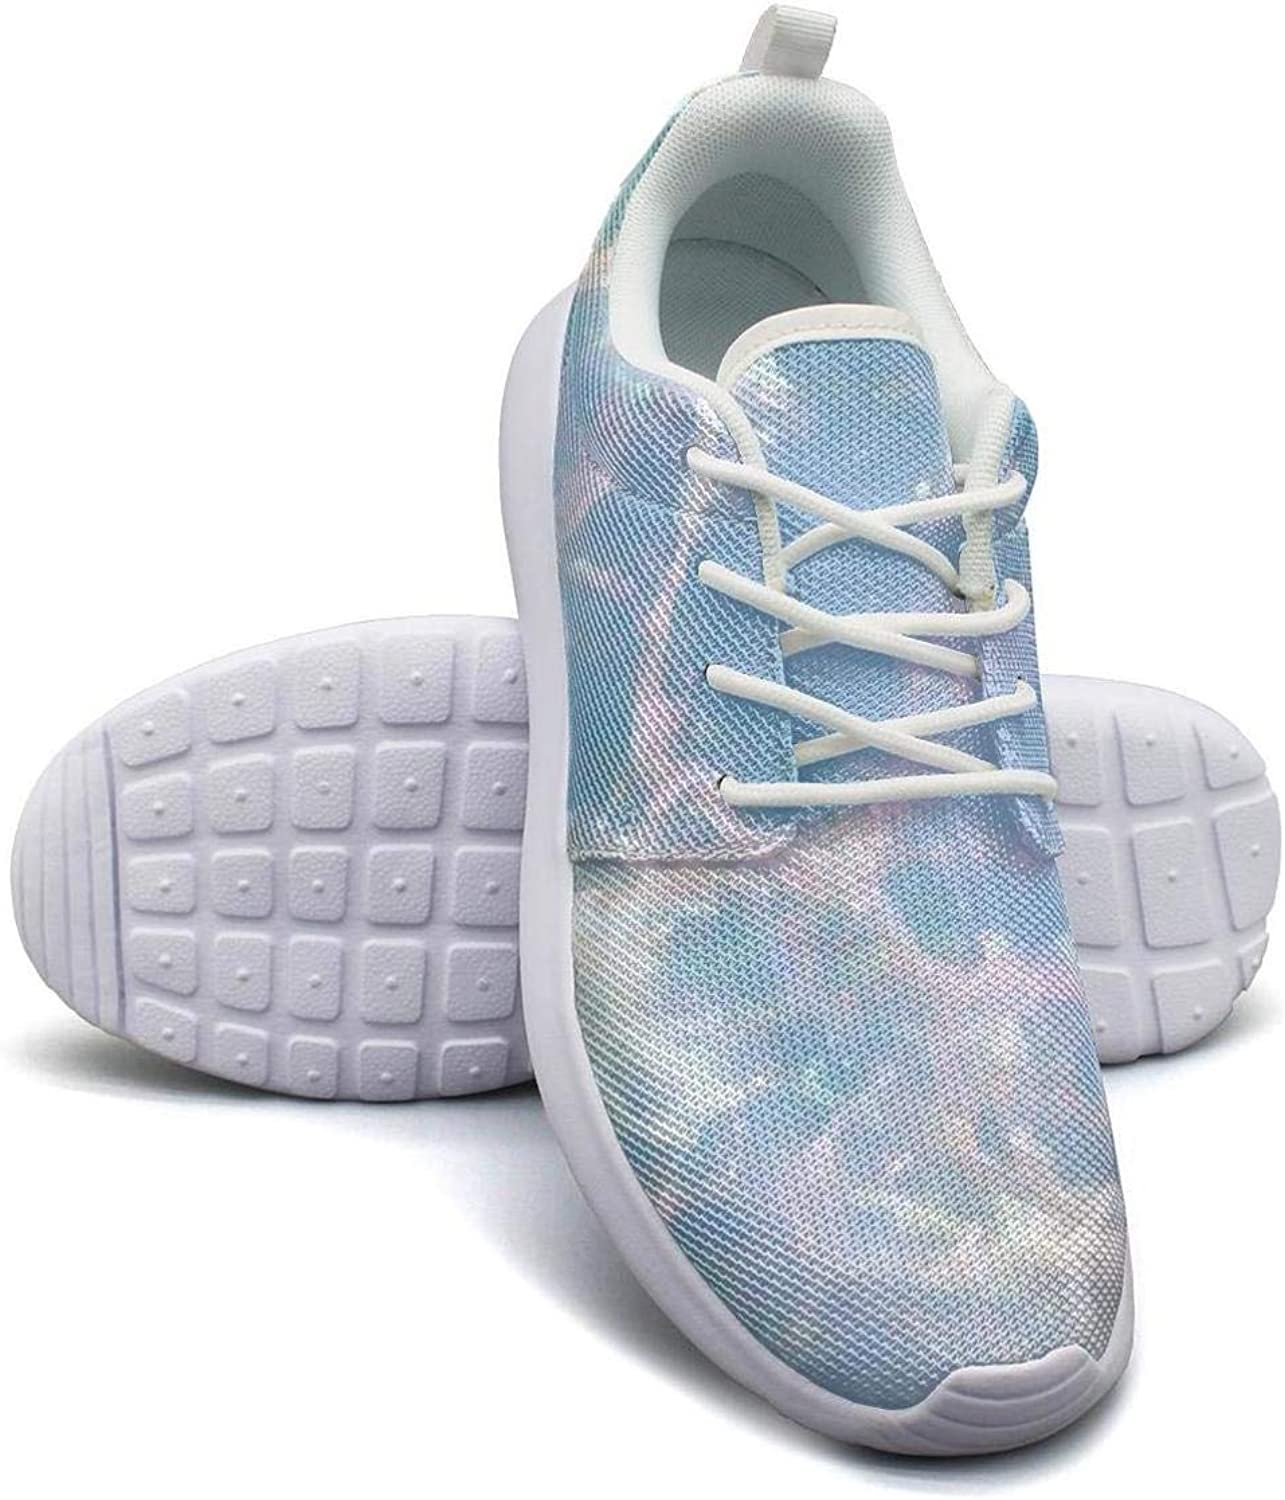 Black Hole Womans Canvas Casual Shoes Sneakers Care Running Shoes